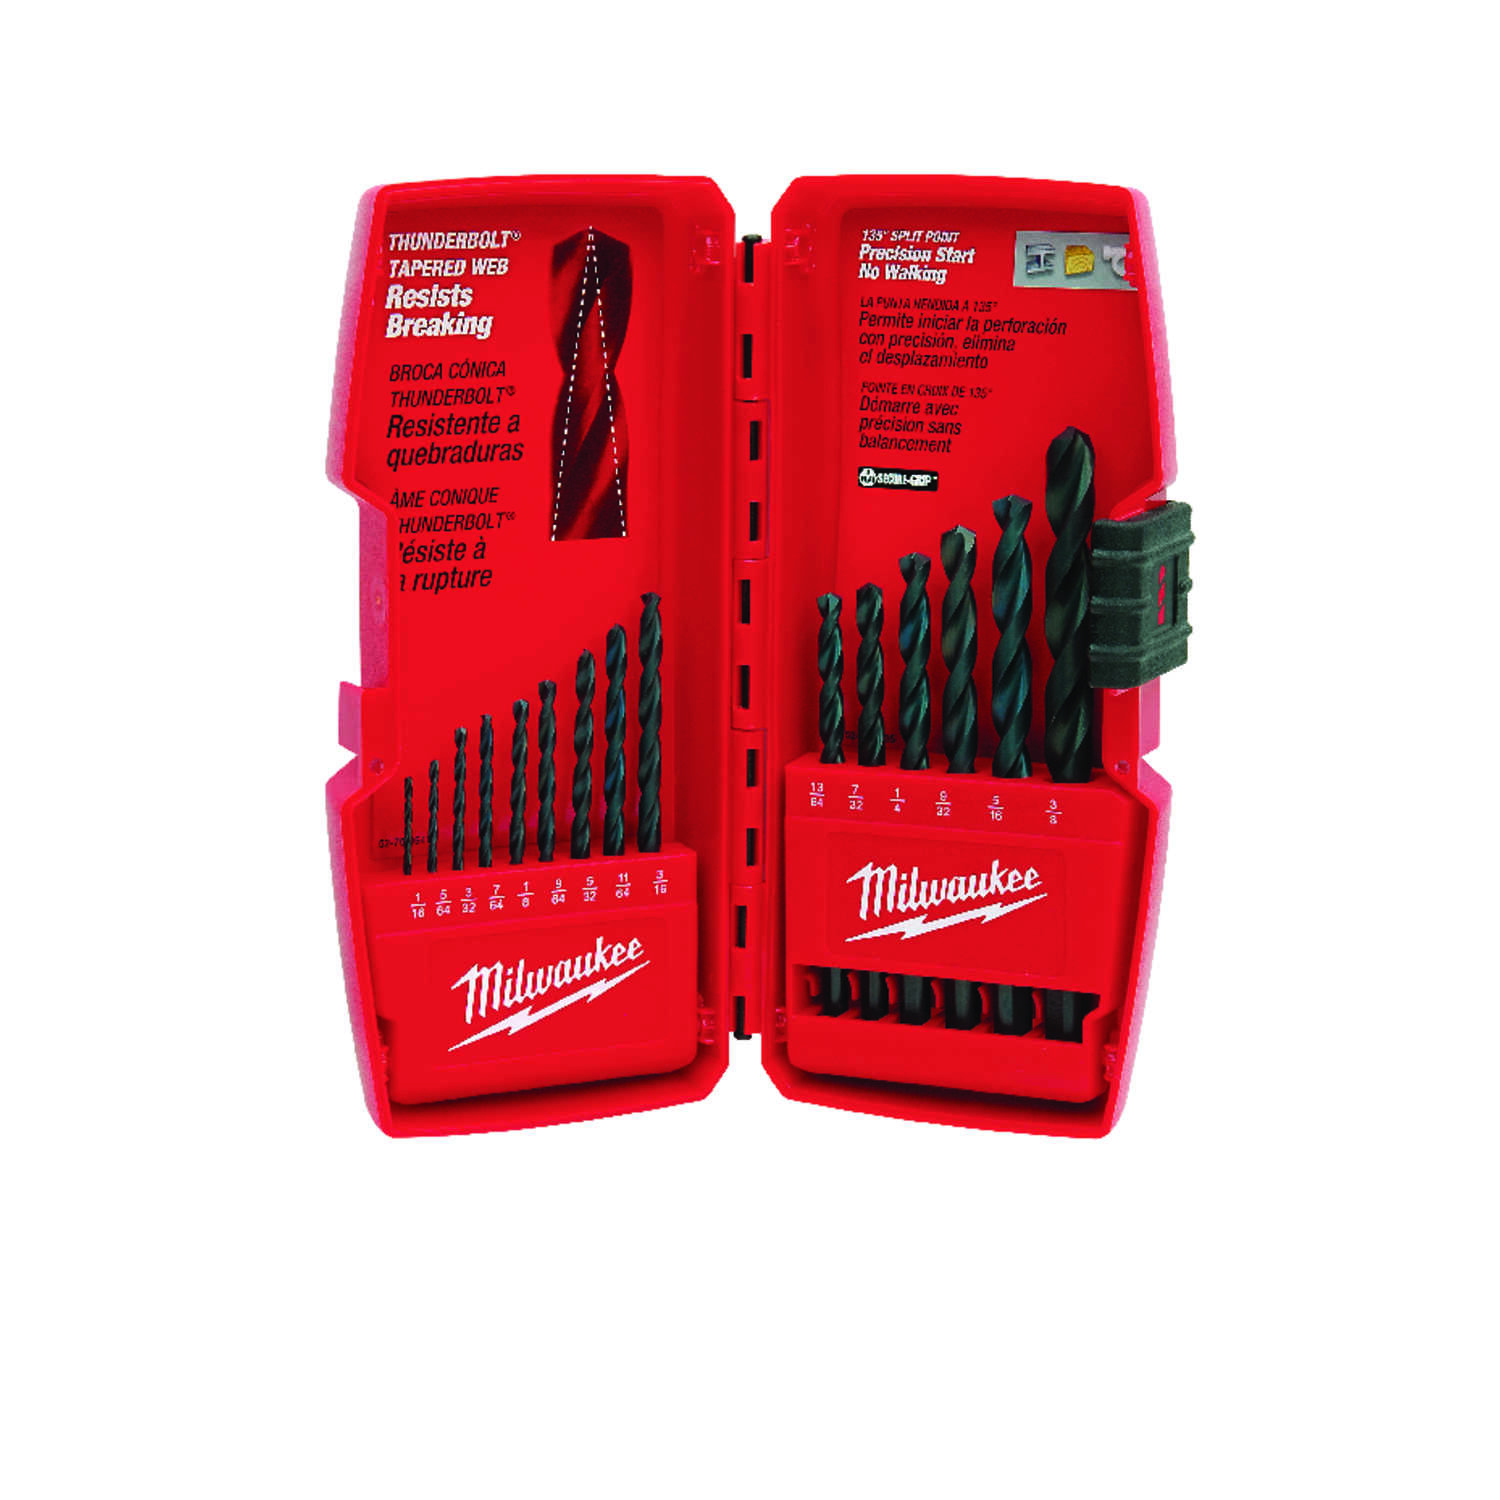 Milwaukee  THUNDERBOLT  Assorted in. Dia. Black Oxide  Drill Bit  3/8 in. 3-Flat Shank  15 pc.